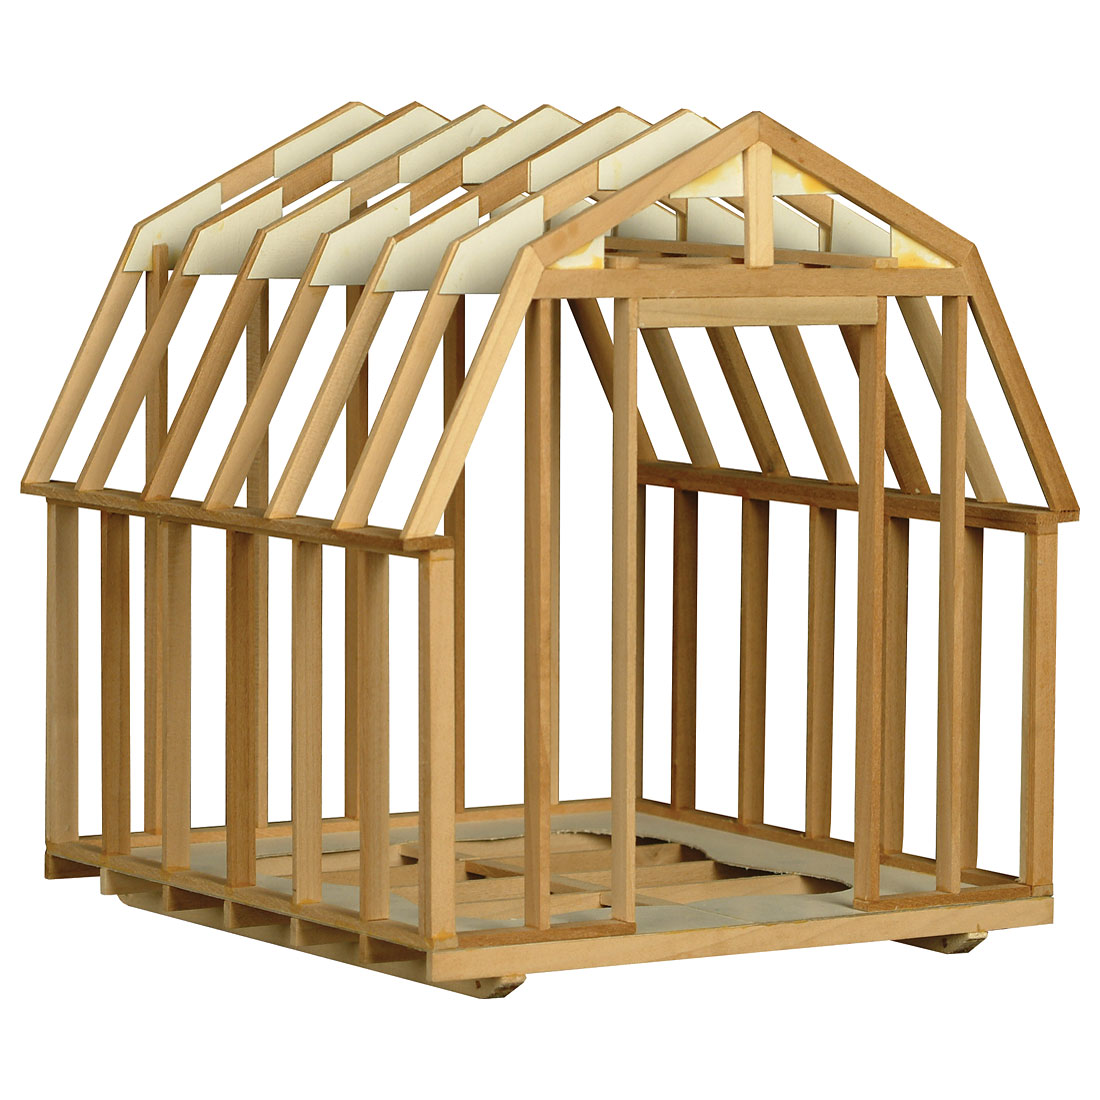 Utility building framing kit 101 w31573 for A frame building kits